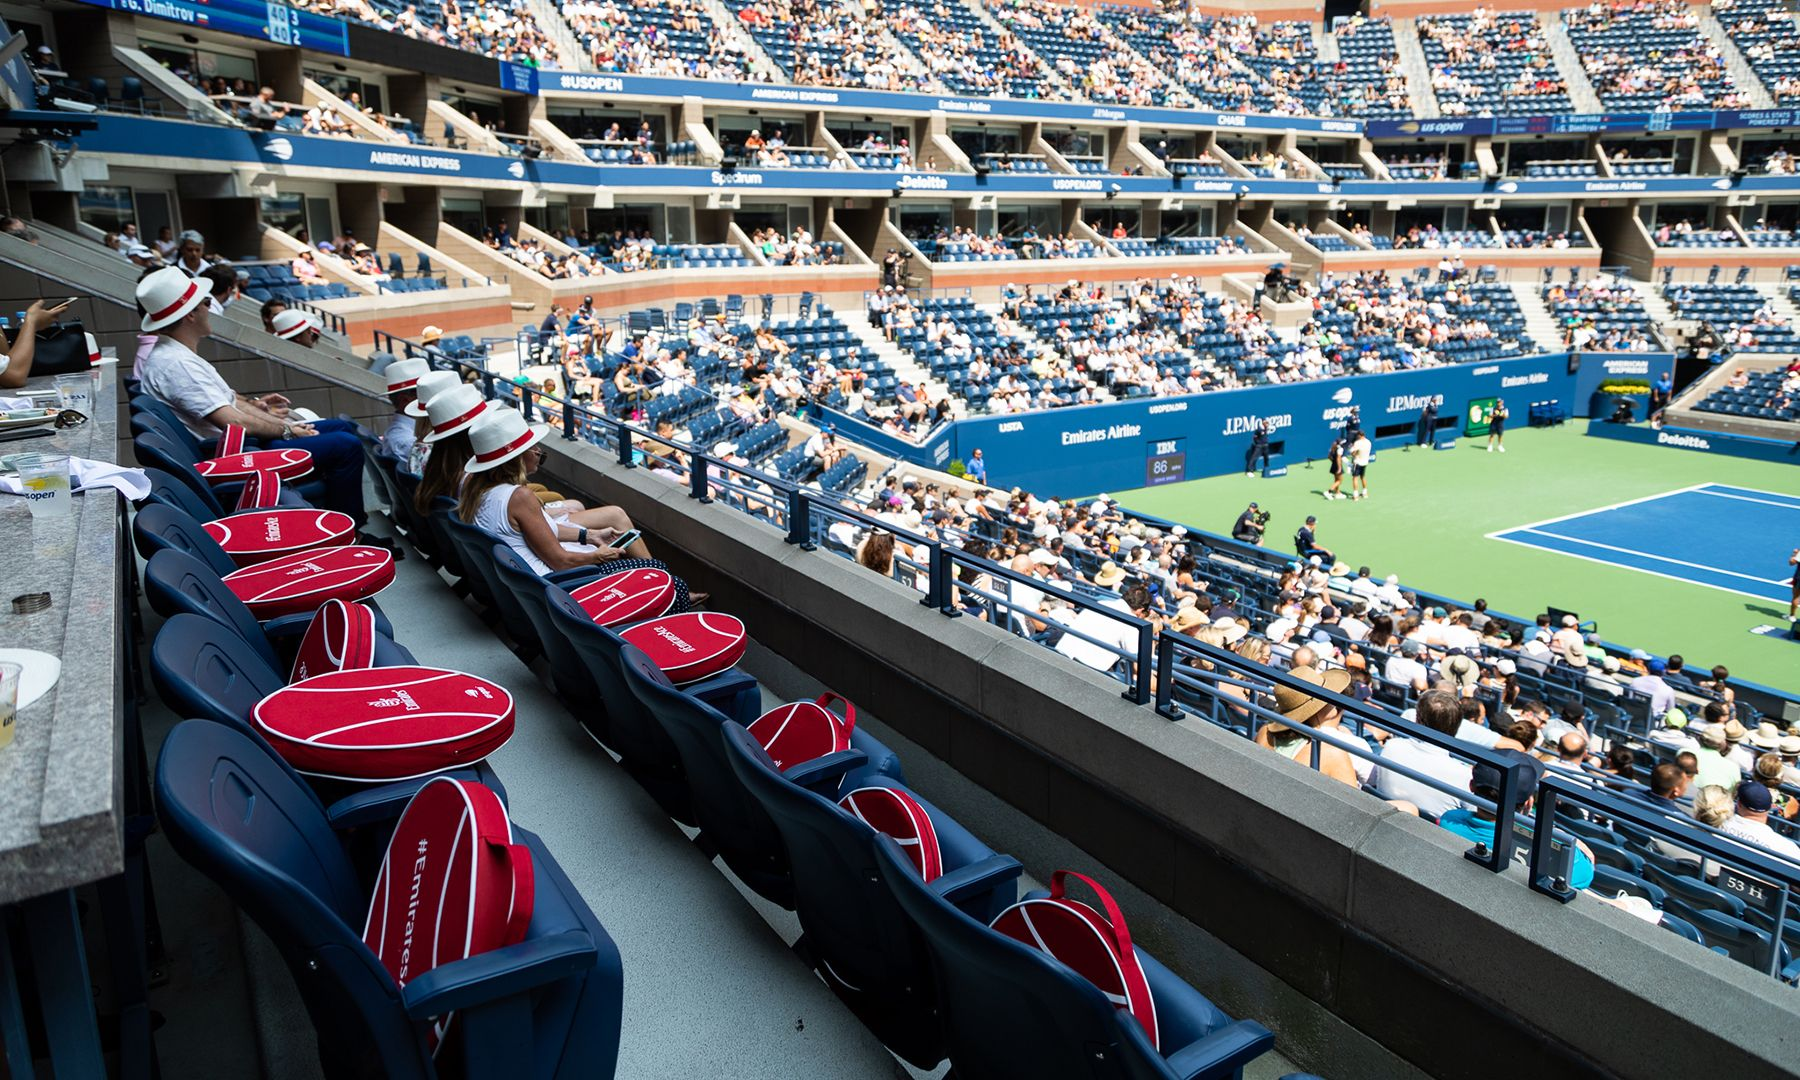 Go inside two US Open VIP suites